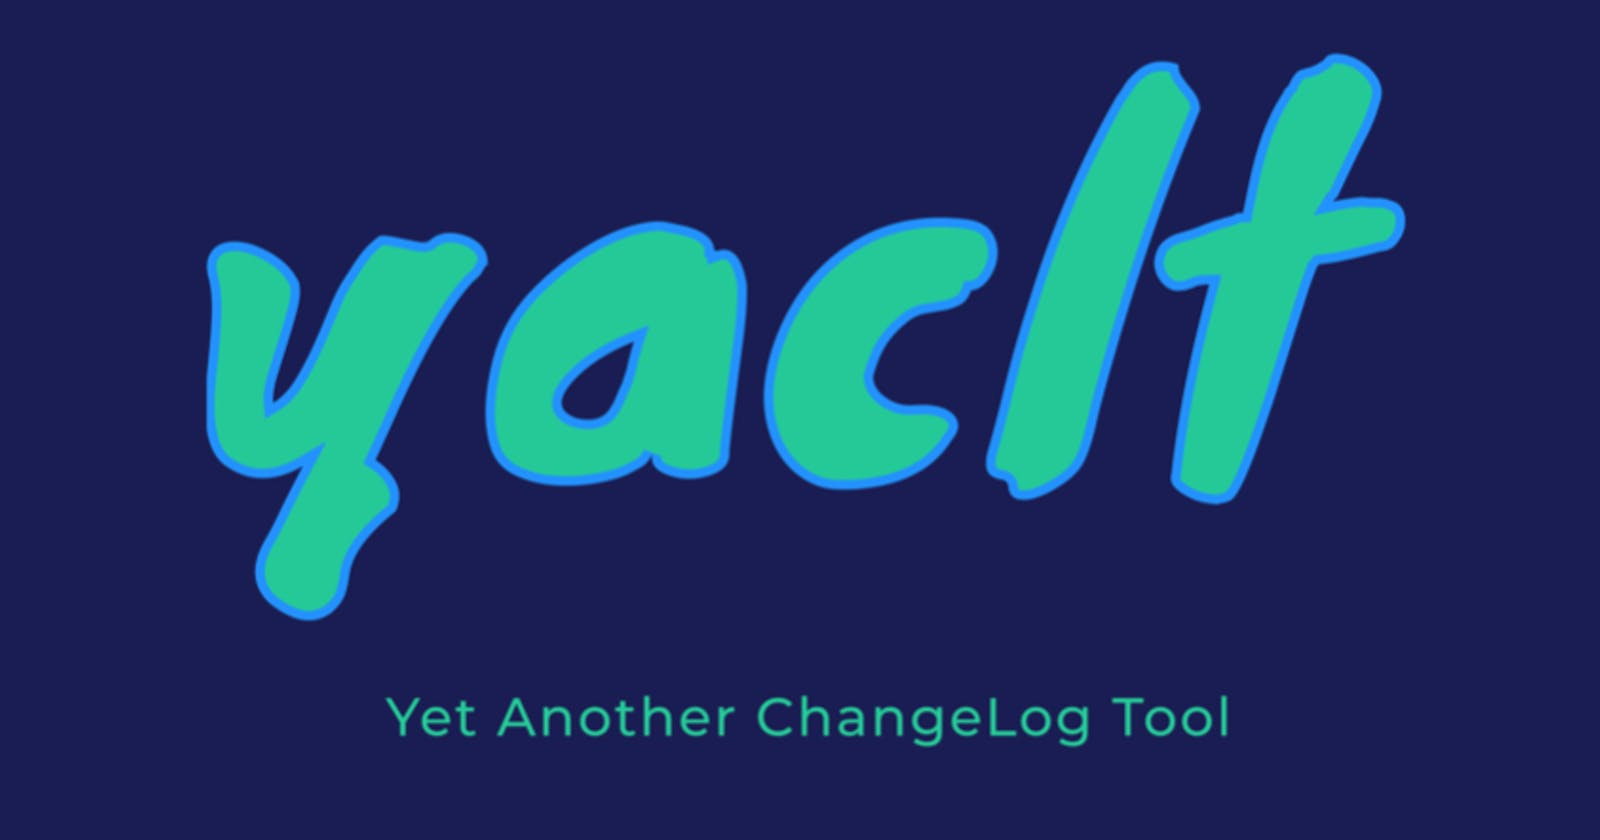 Introducing Yaclt (Yet Another ChangeLog Tool)